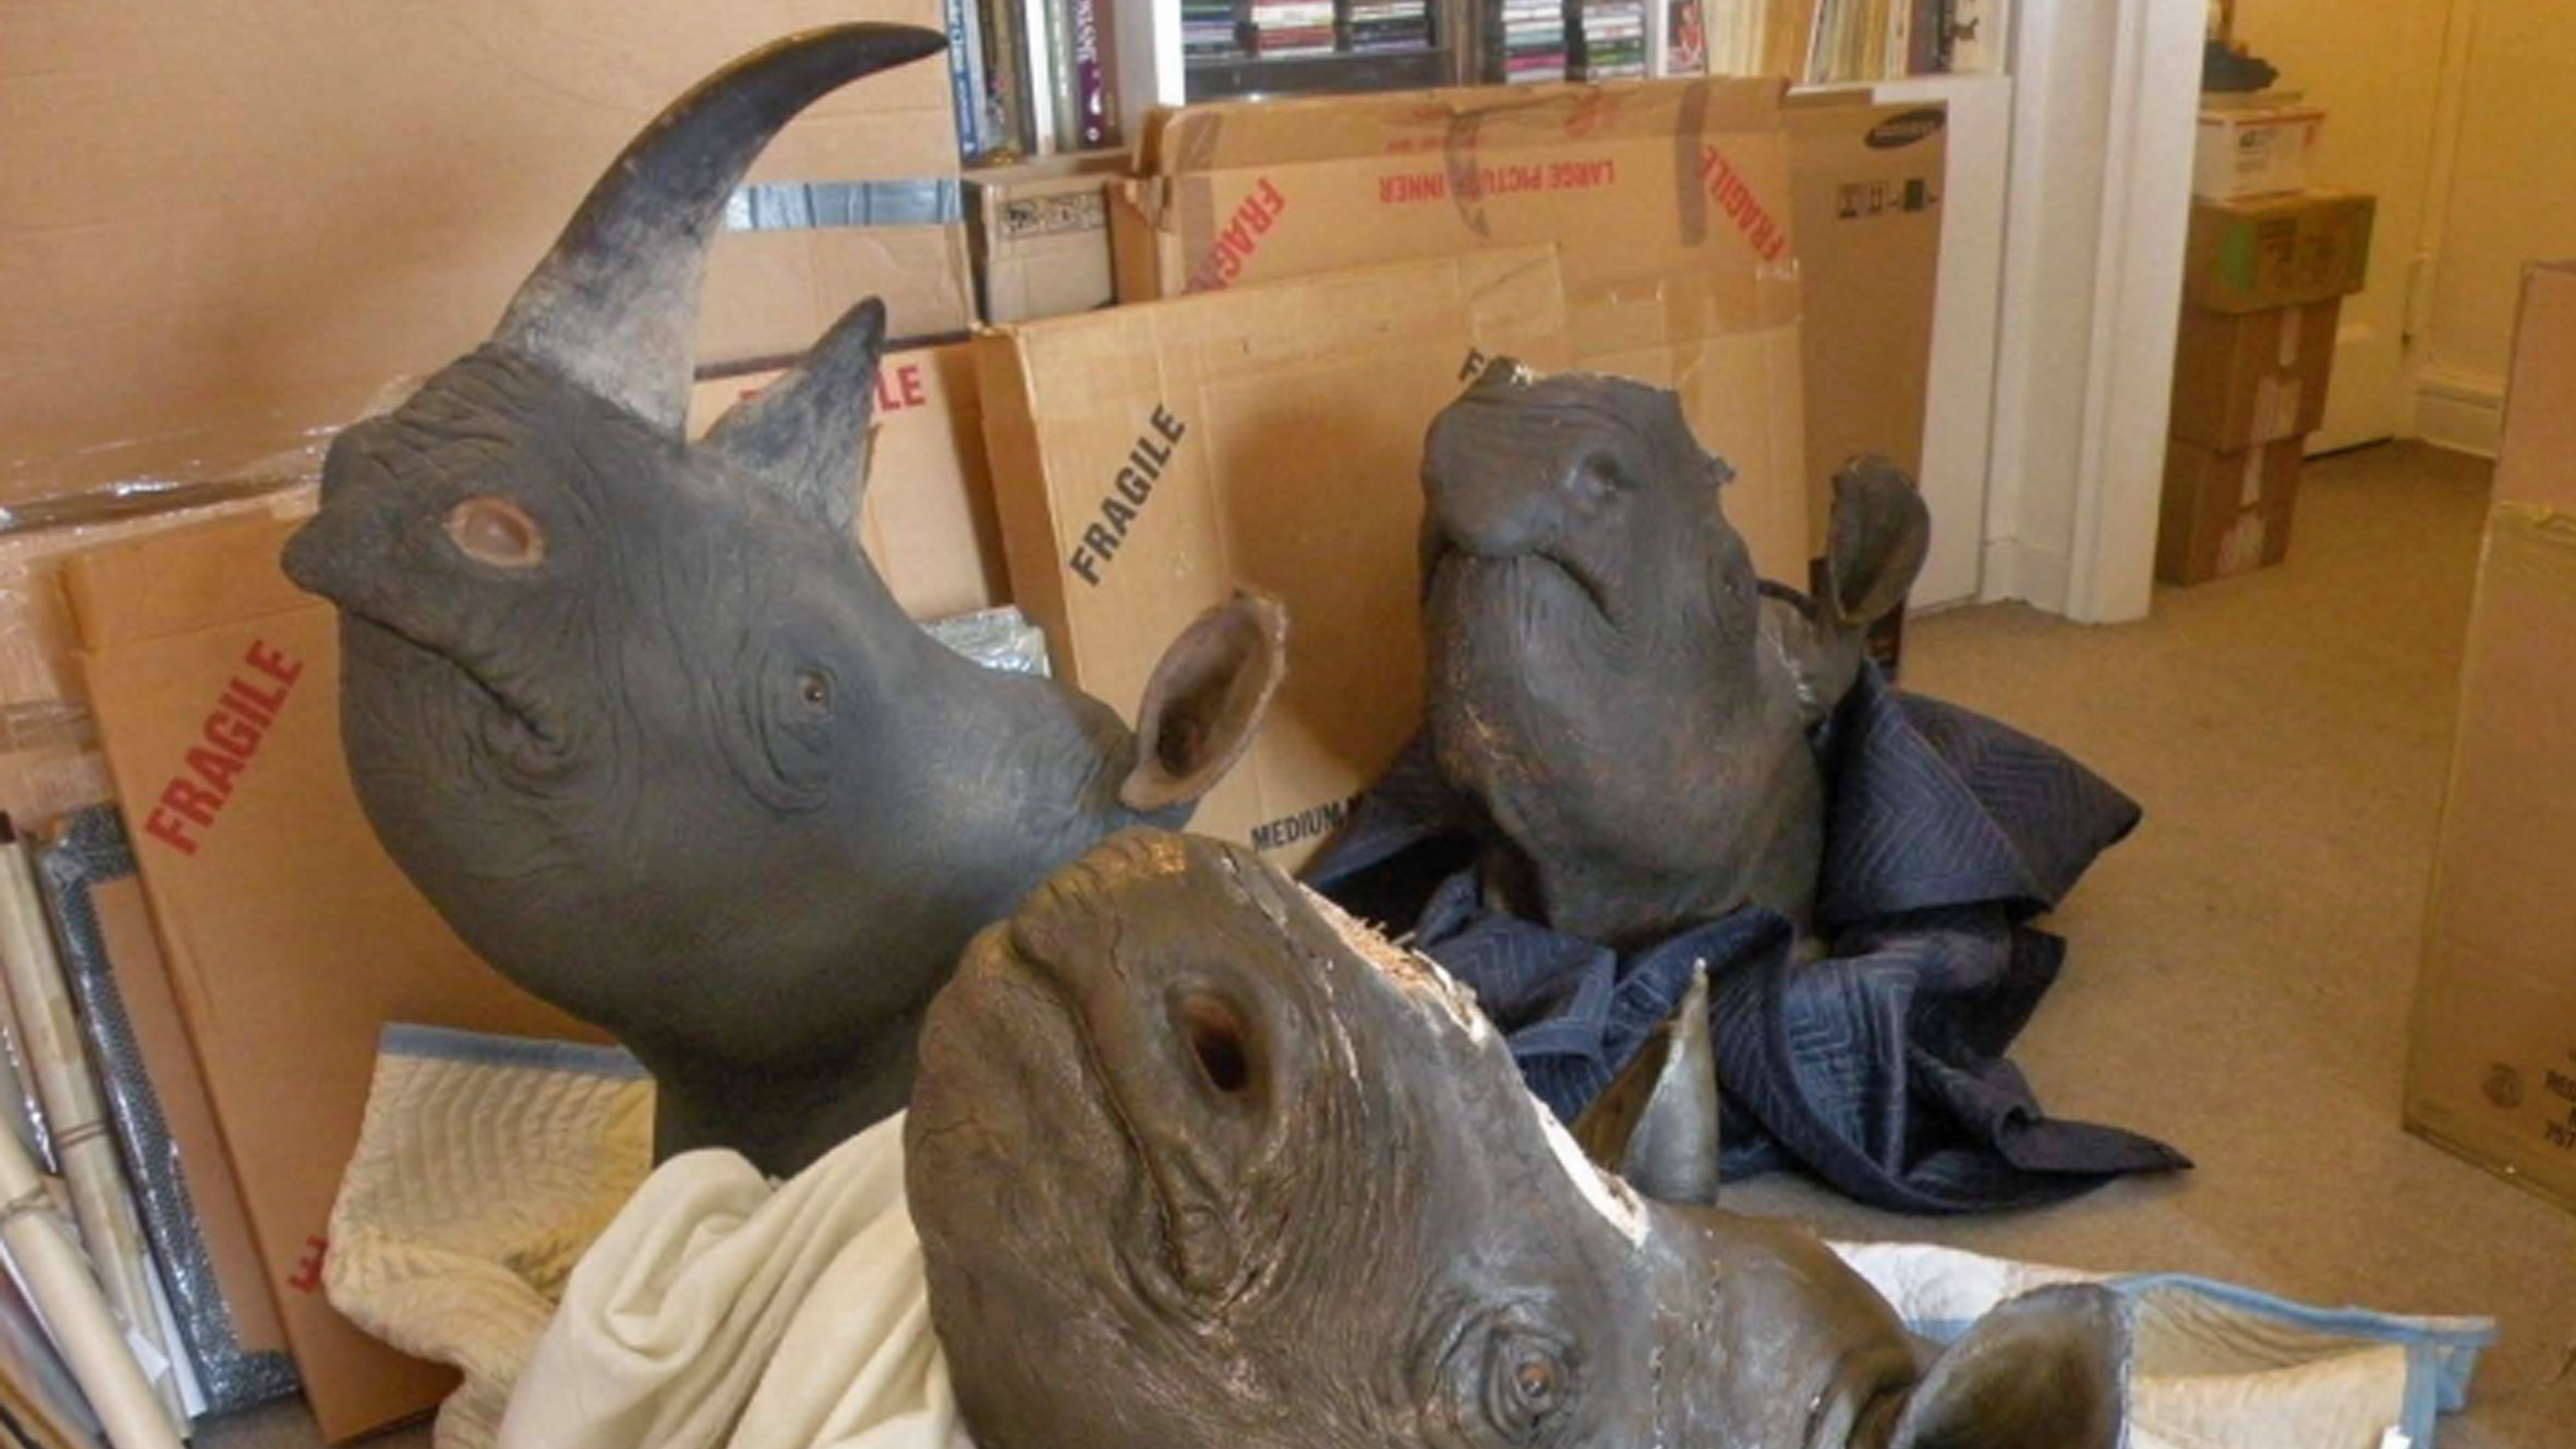 There's a country that will pay $300,000 per rhino horn to cure